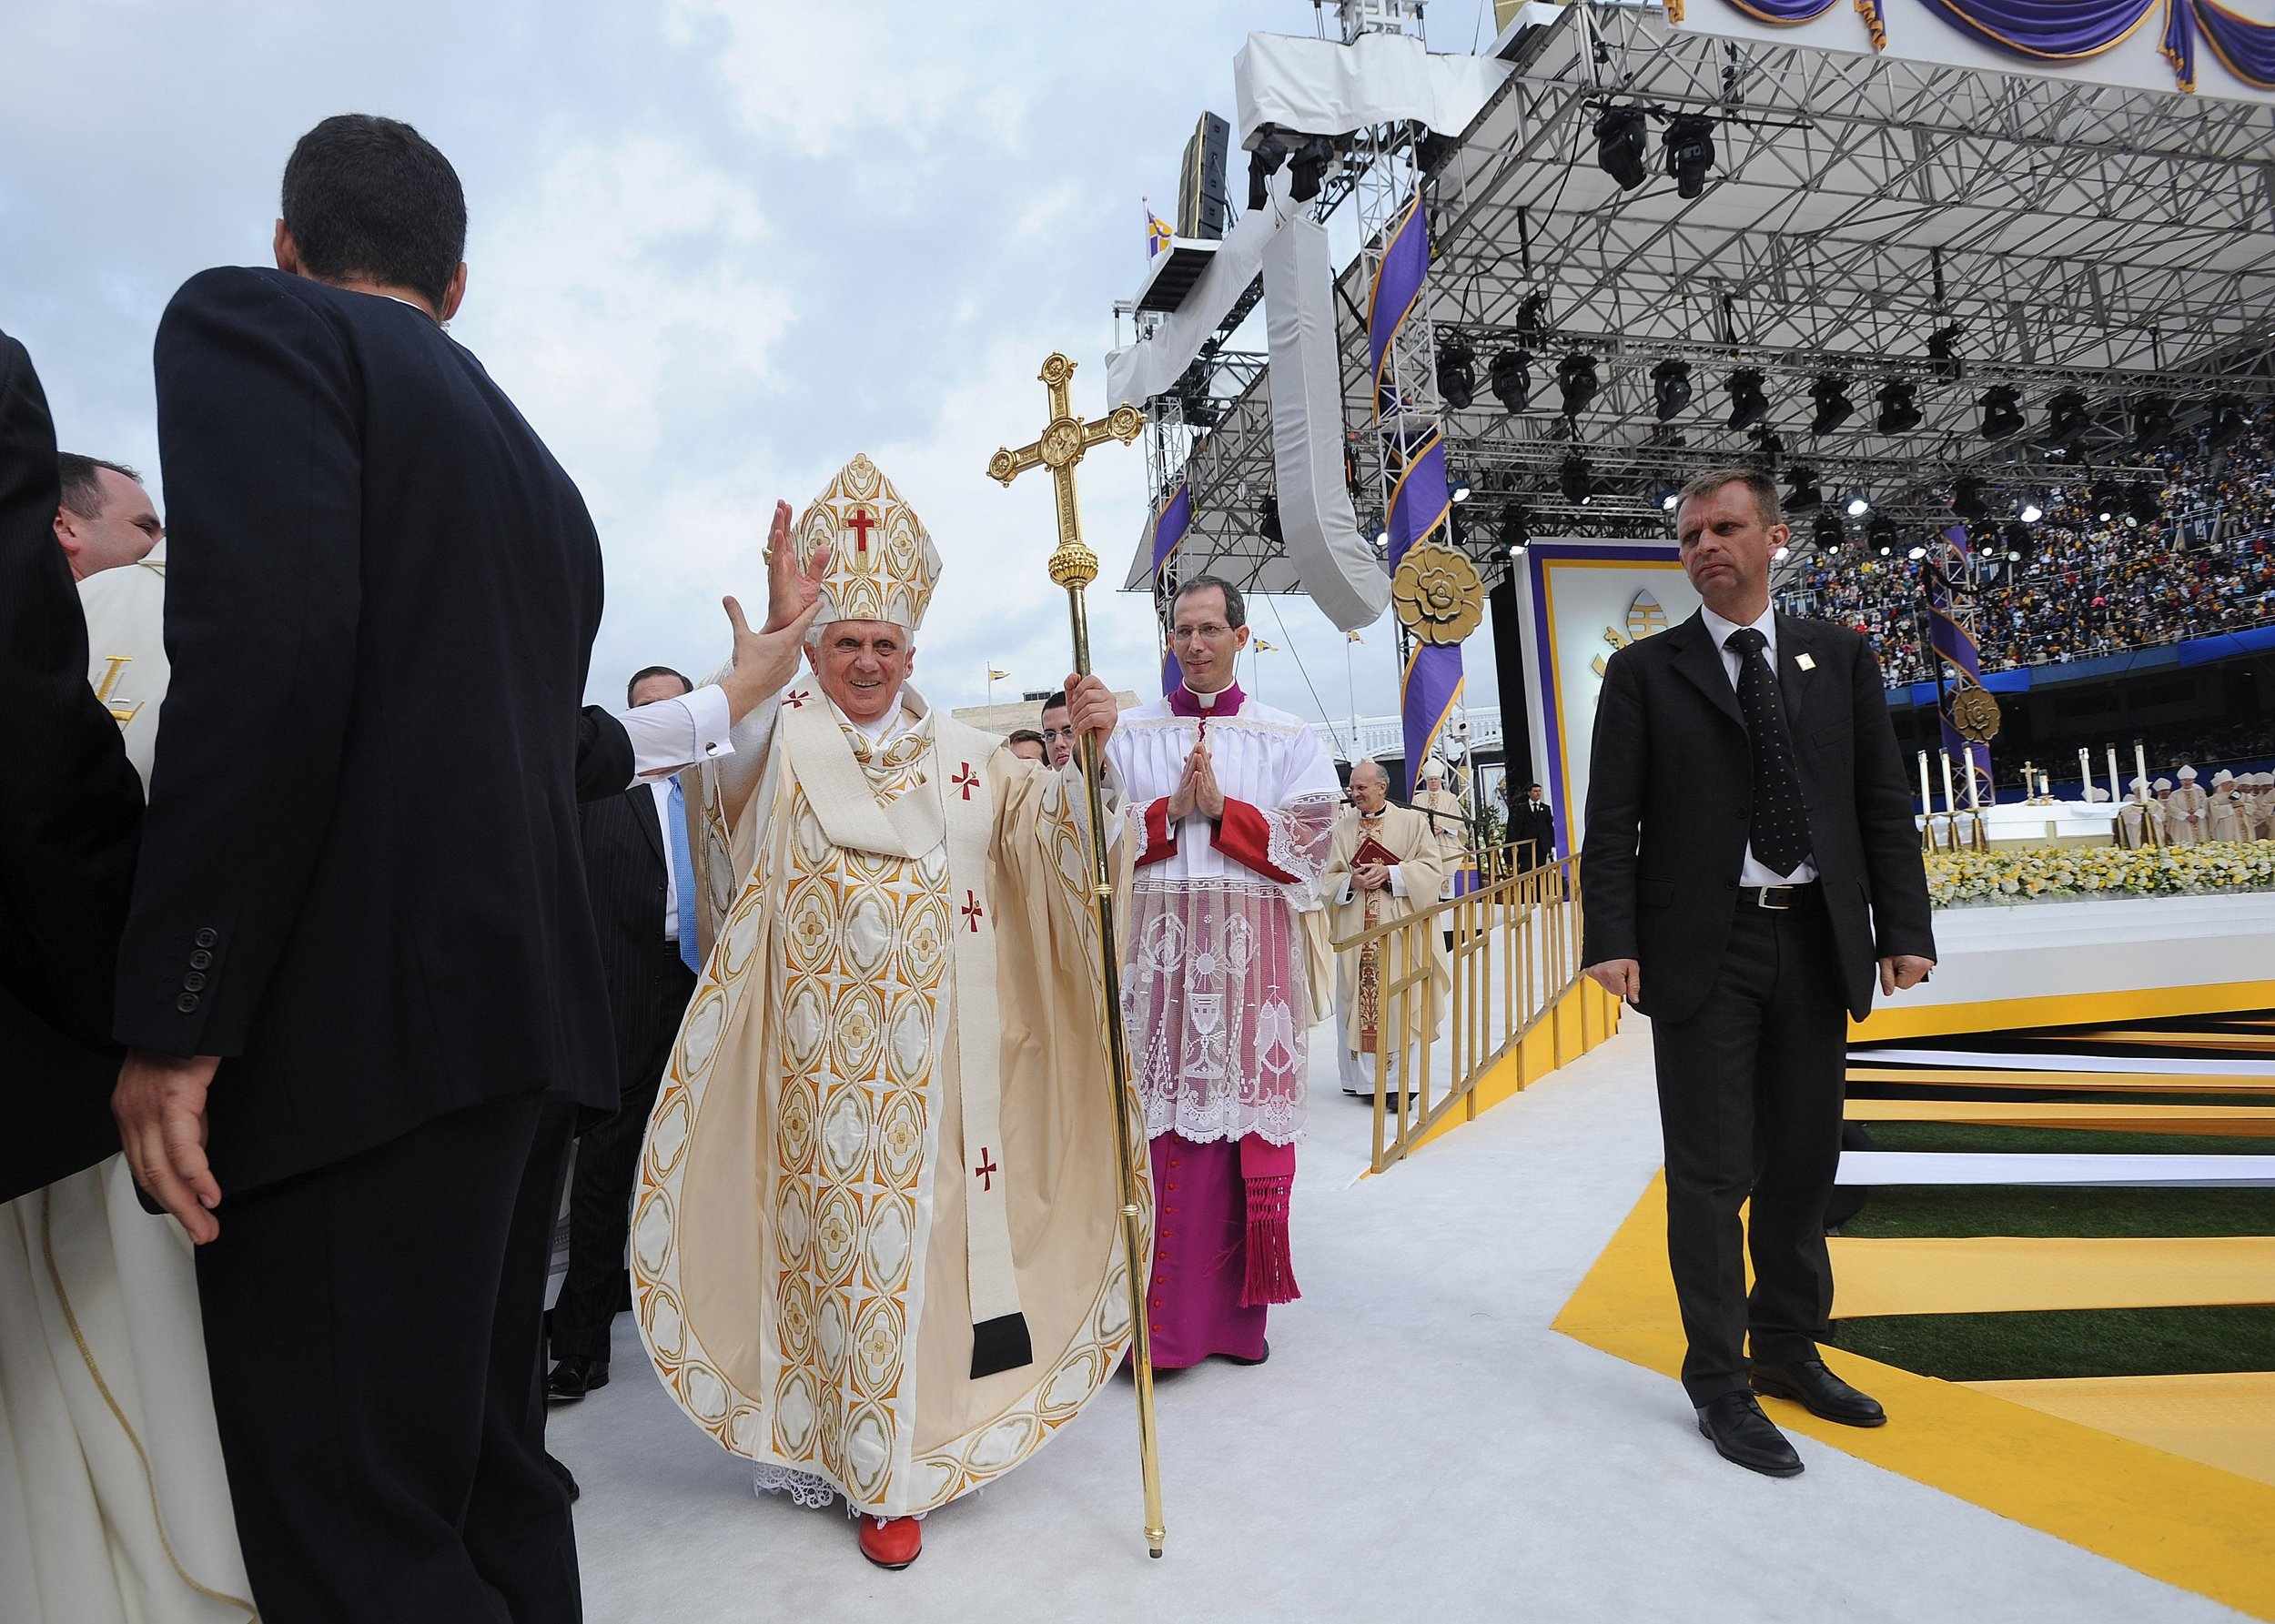 """The Massive Mass – Pope Benedict XVI at Yankee Stadium - """"There weren't a lot of changes from concept to reality,"""" Pierce said. """"It was more about preserving that initial concept to the best of our ability."""""""